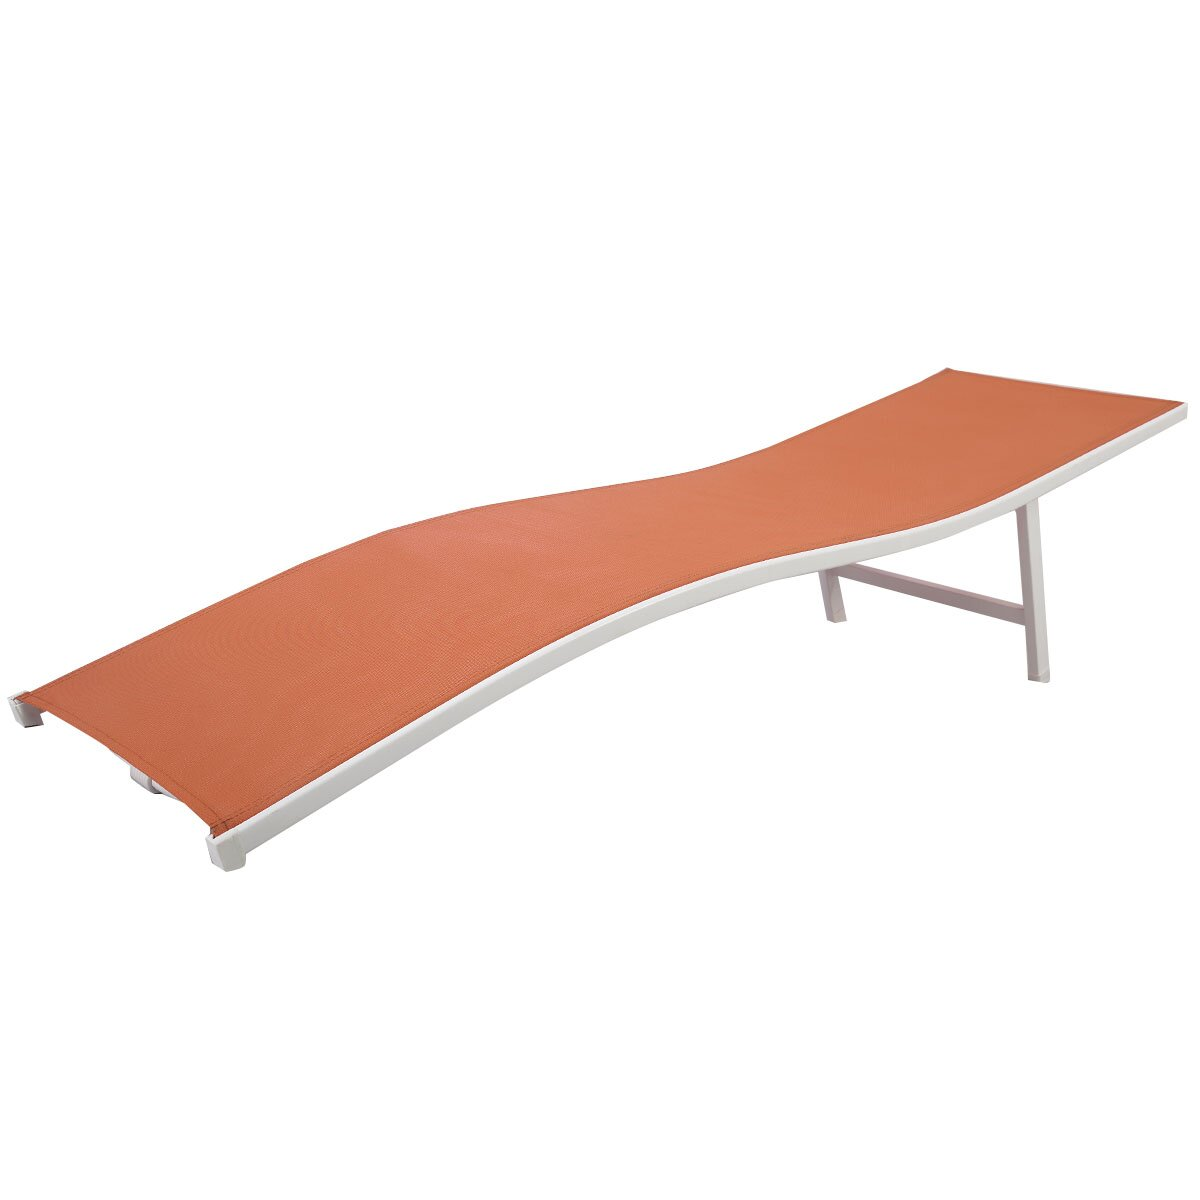 Costway Lounger Patio Outdoor Chaise Lounge Chair Bed Orange